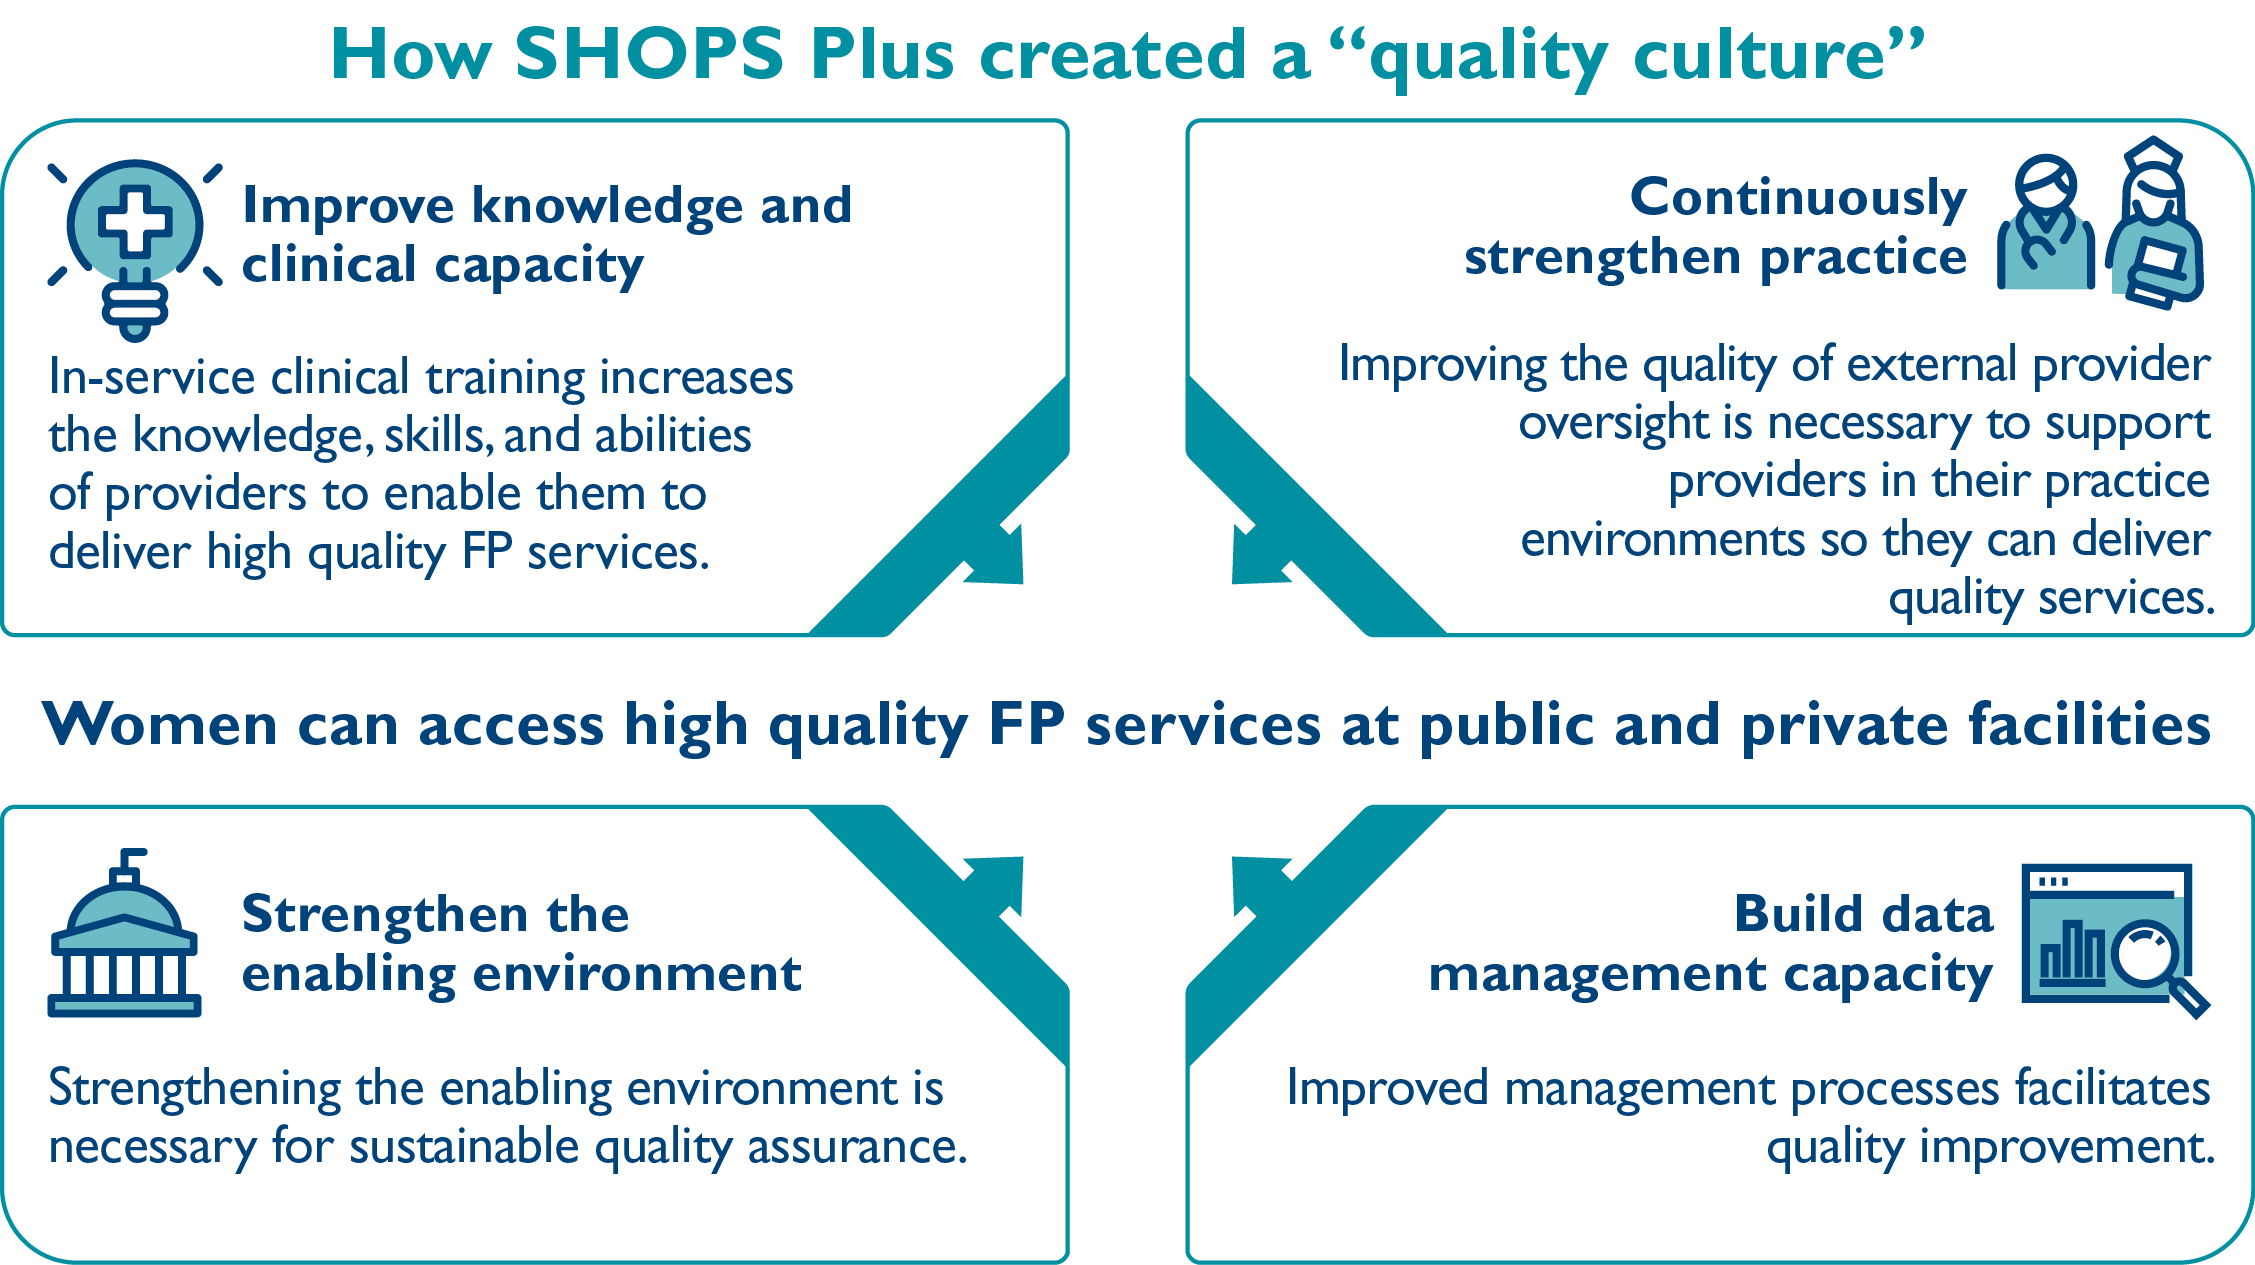 How SHOPS Plus created a quality culture infographic